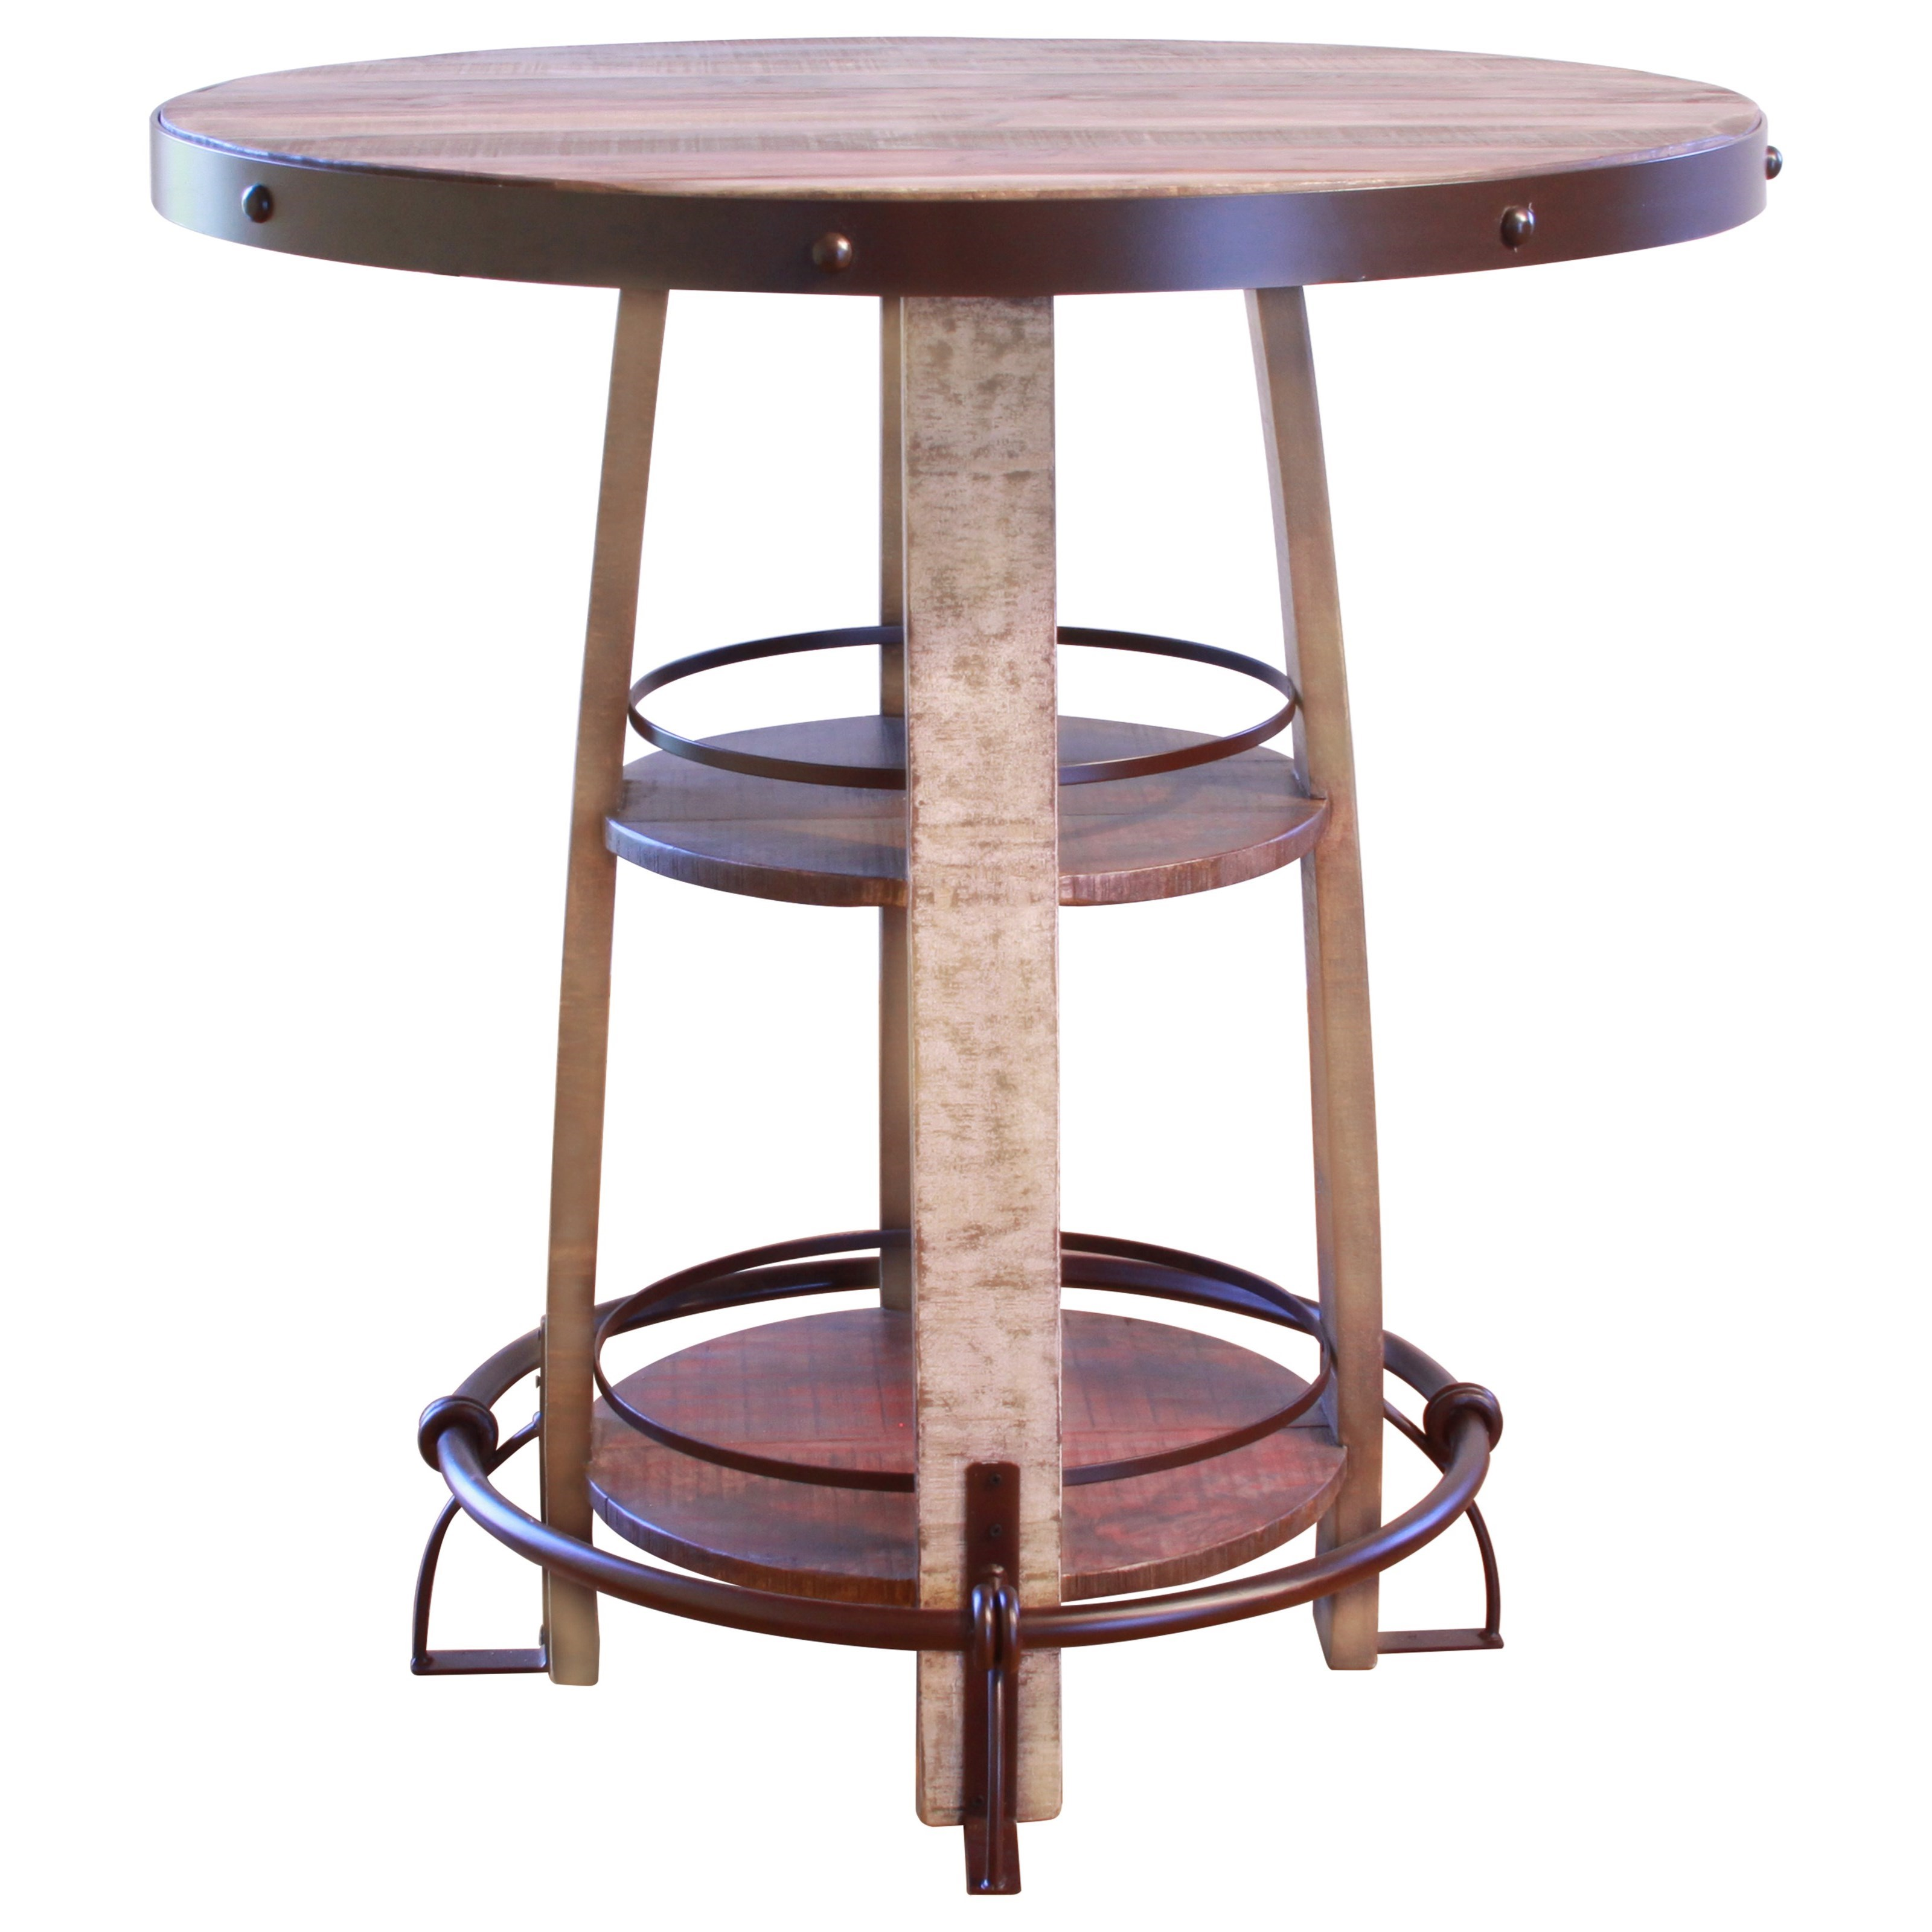 967 Rustic Bistro Barrel Bar Table by IFD International Furniture Direct at Suburban Furniture